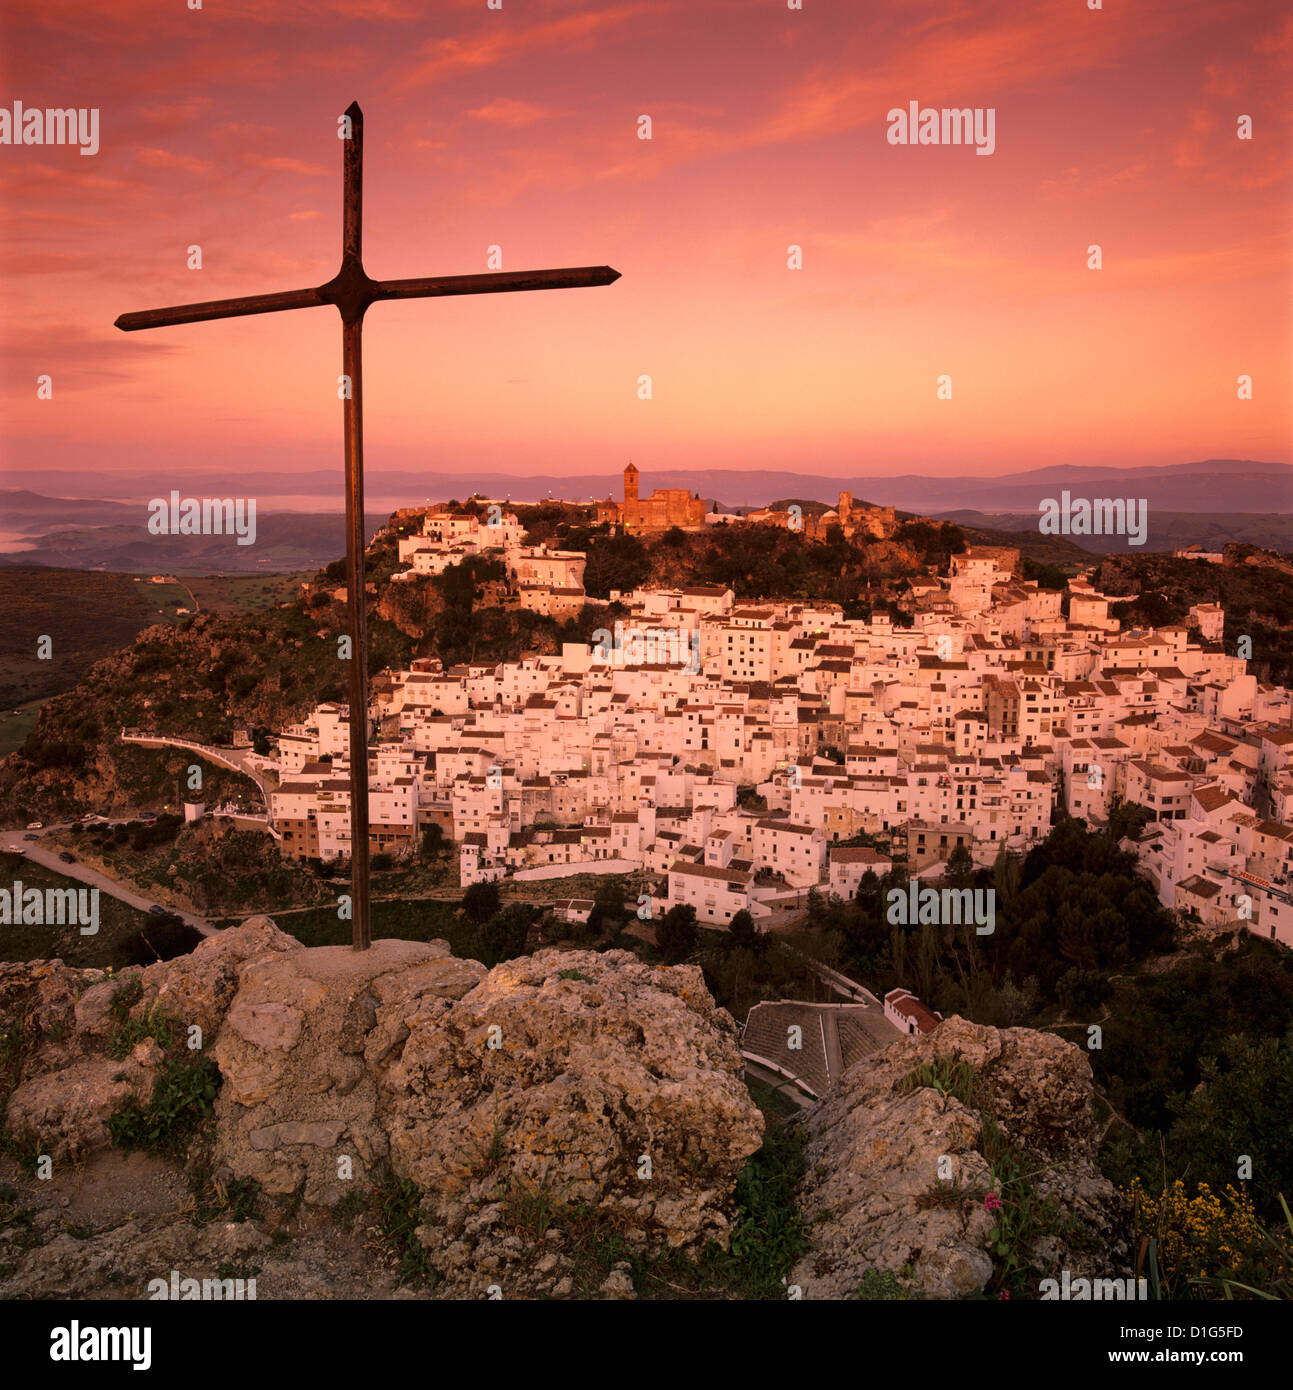 Sunrise over typical white Andalucian village, Casares, Andalucia, Spain, Europe - Stock Image